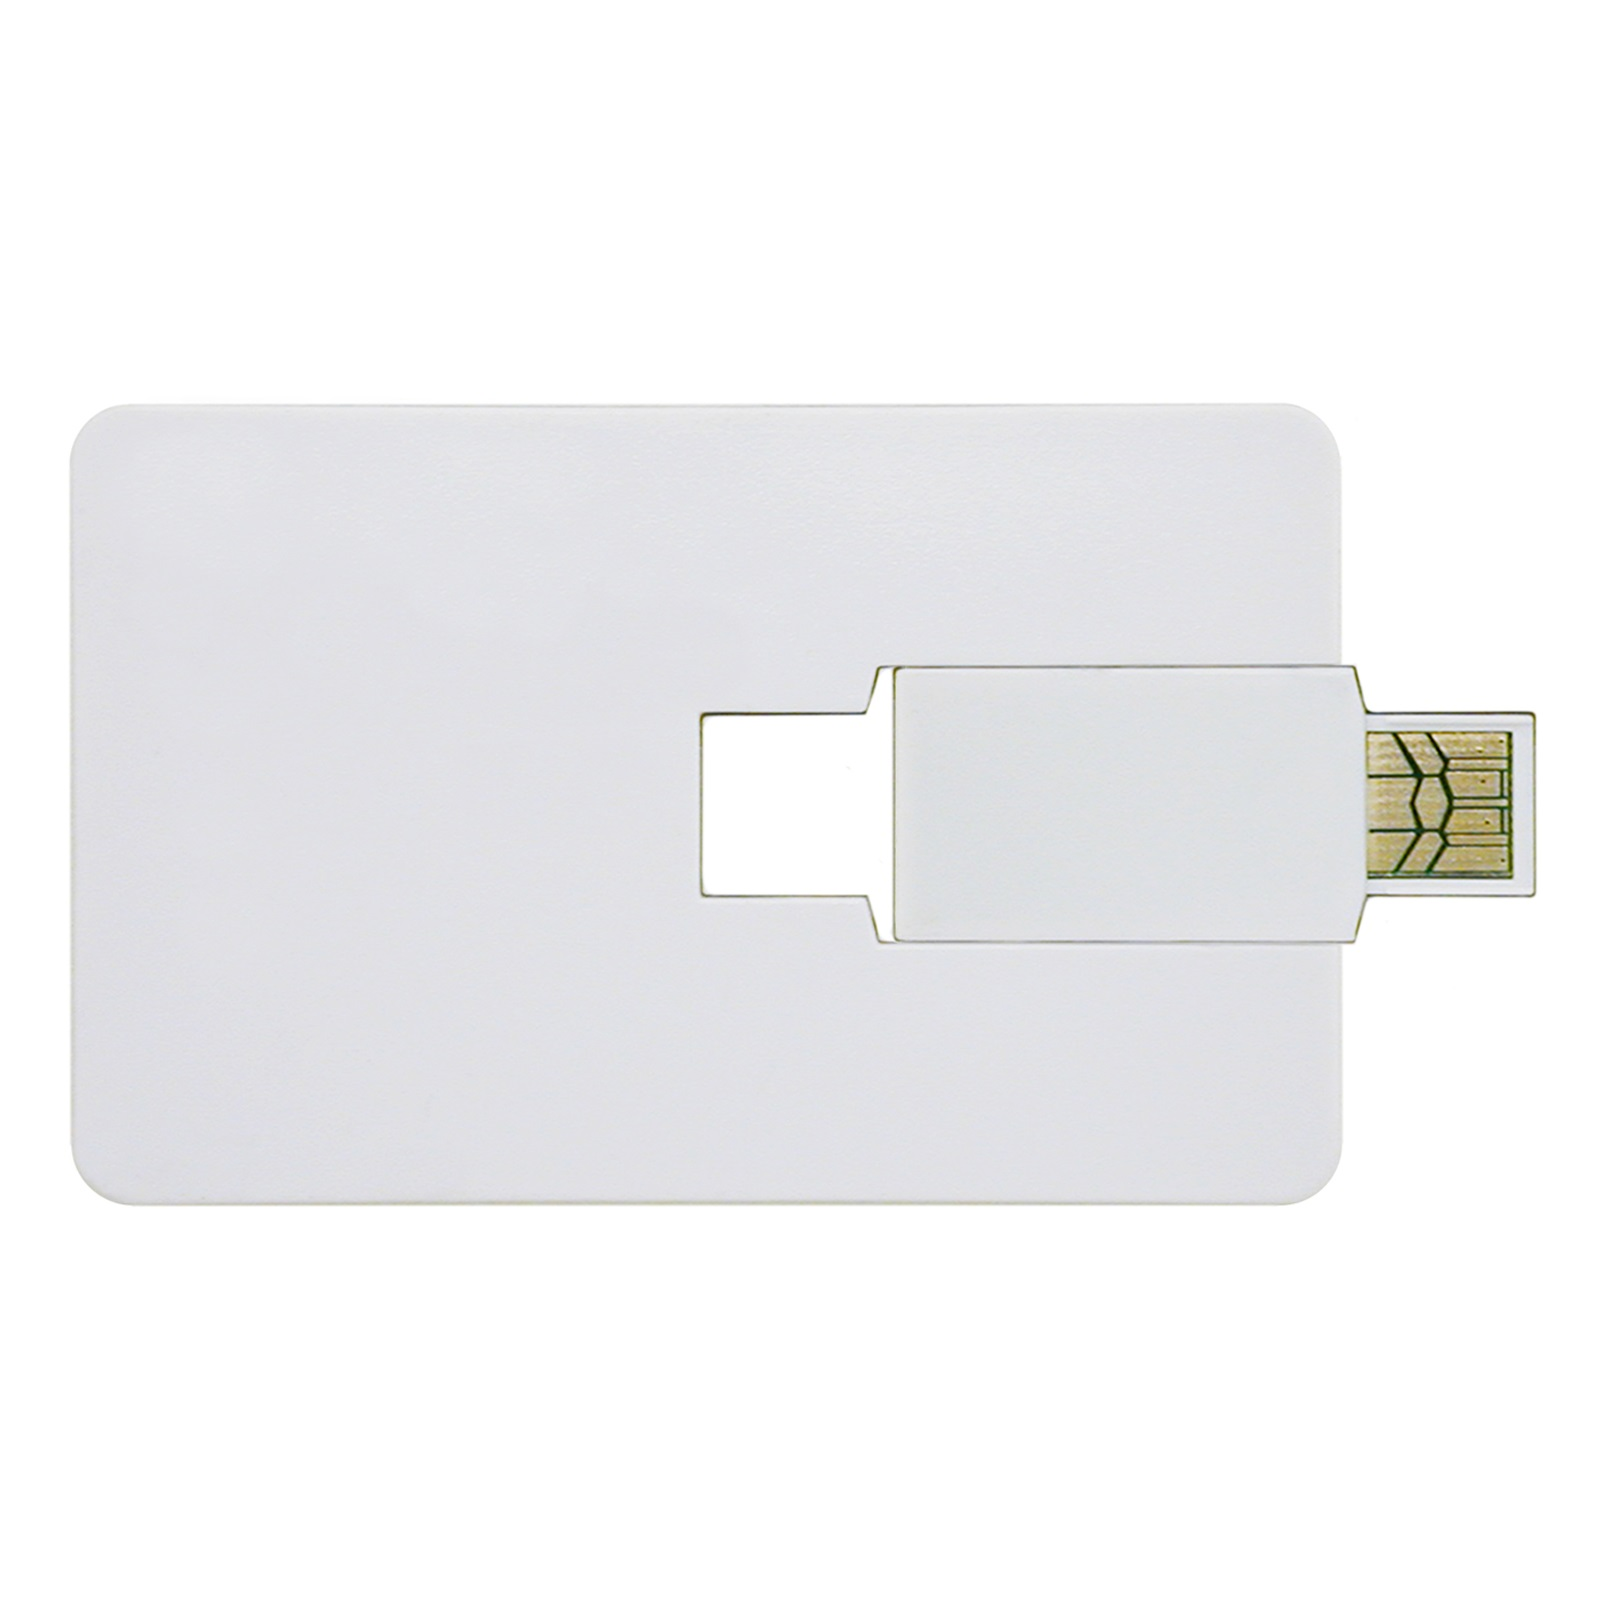 Credit Card USB Flash Drive - 2GB